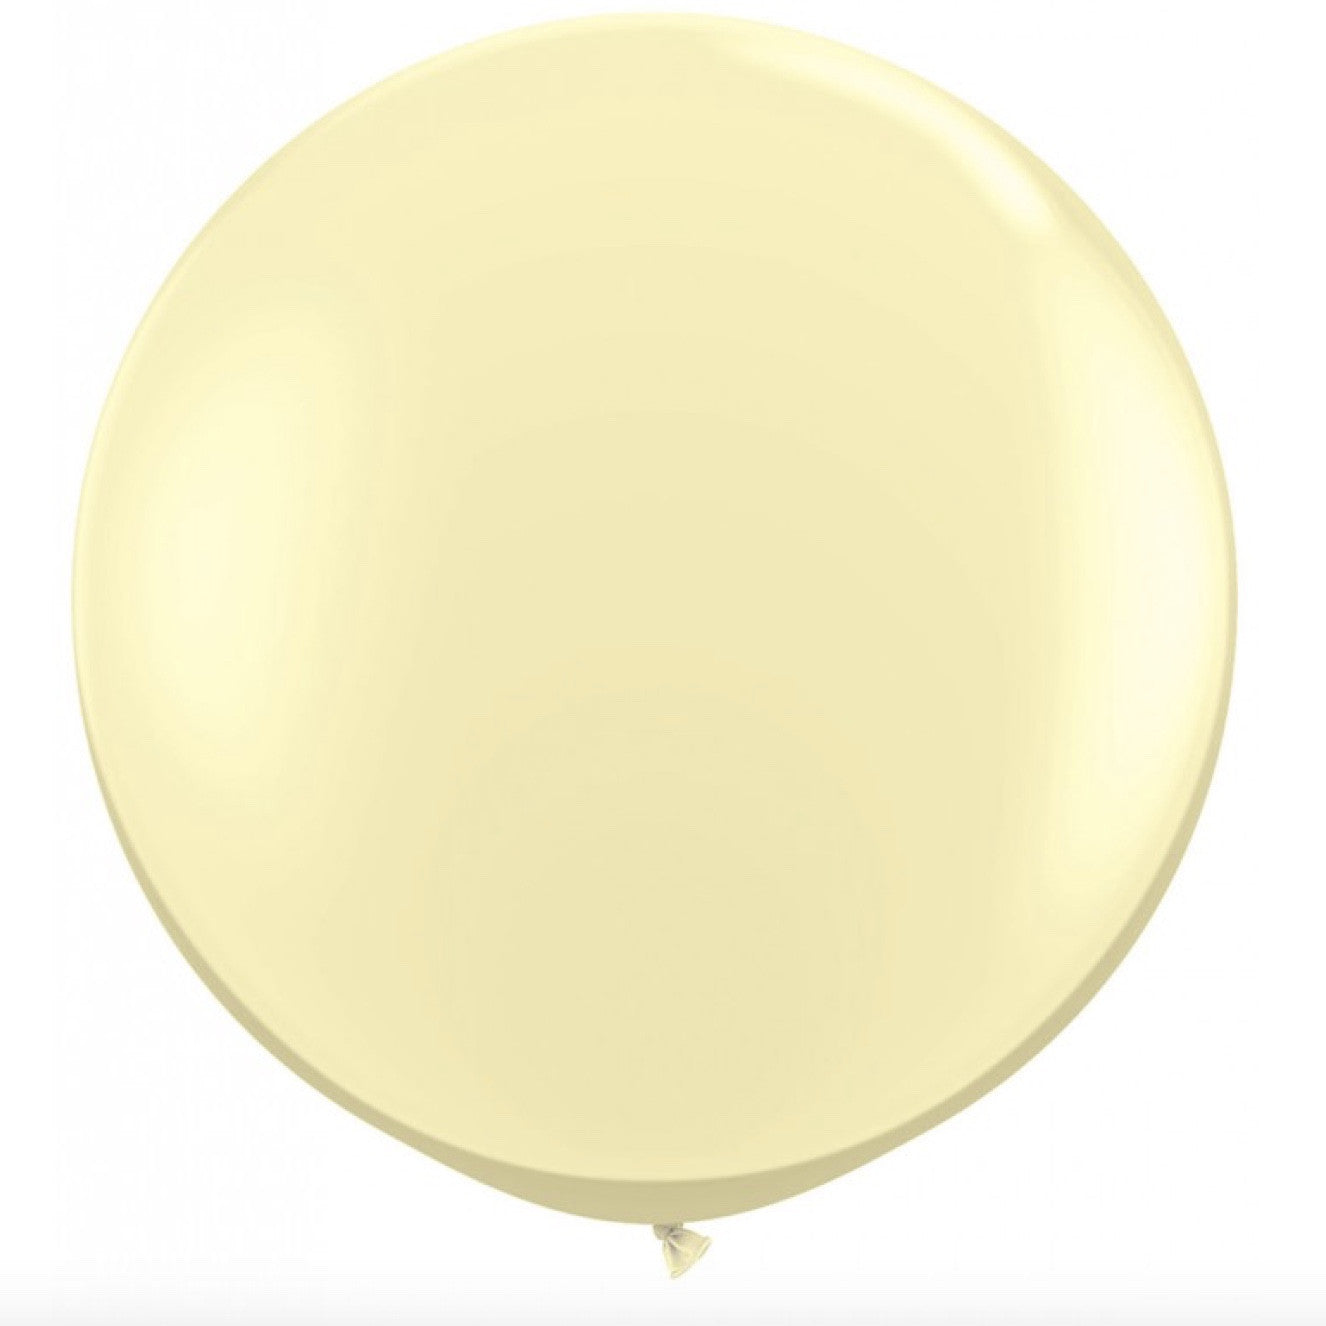 "Giant Round Balloon 36""- Ivory, SE-Surprize Enterprize, Putti Fine Furnishings"